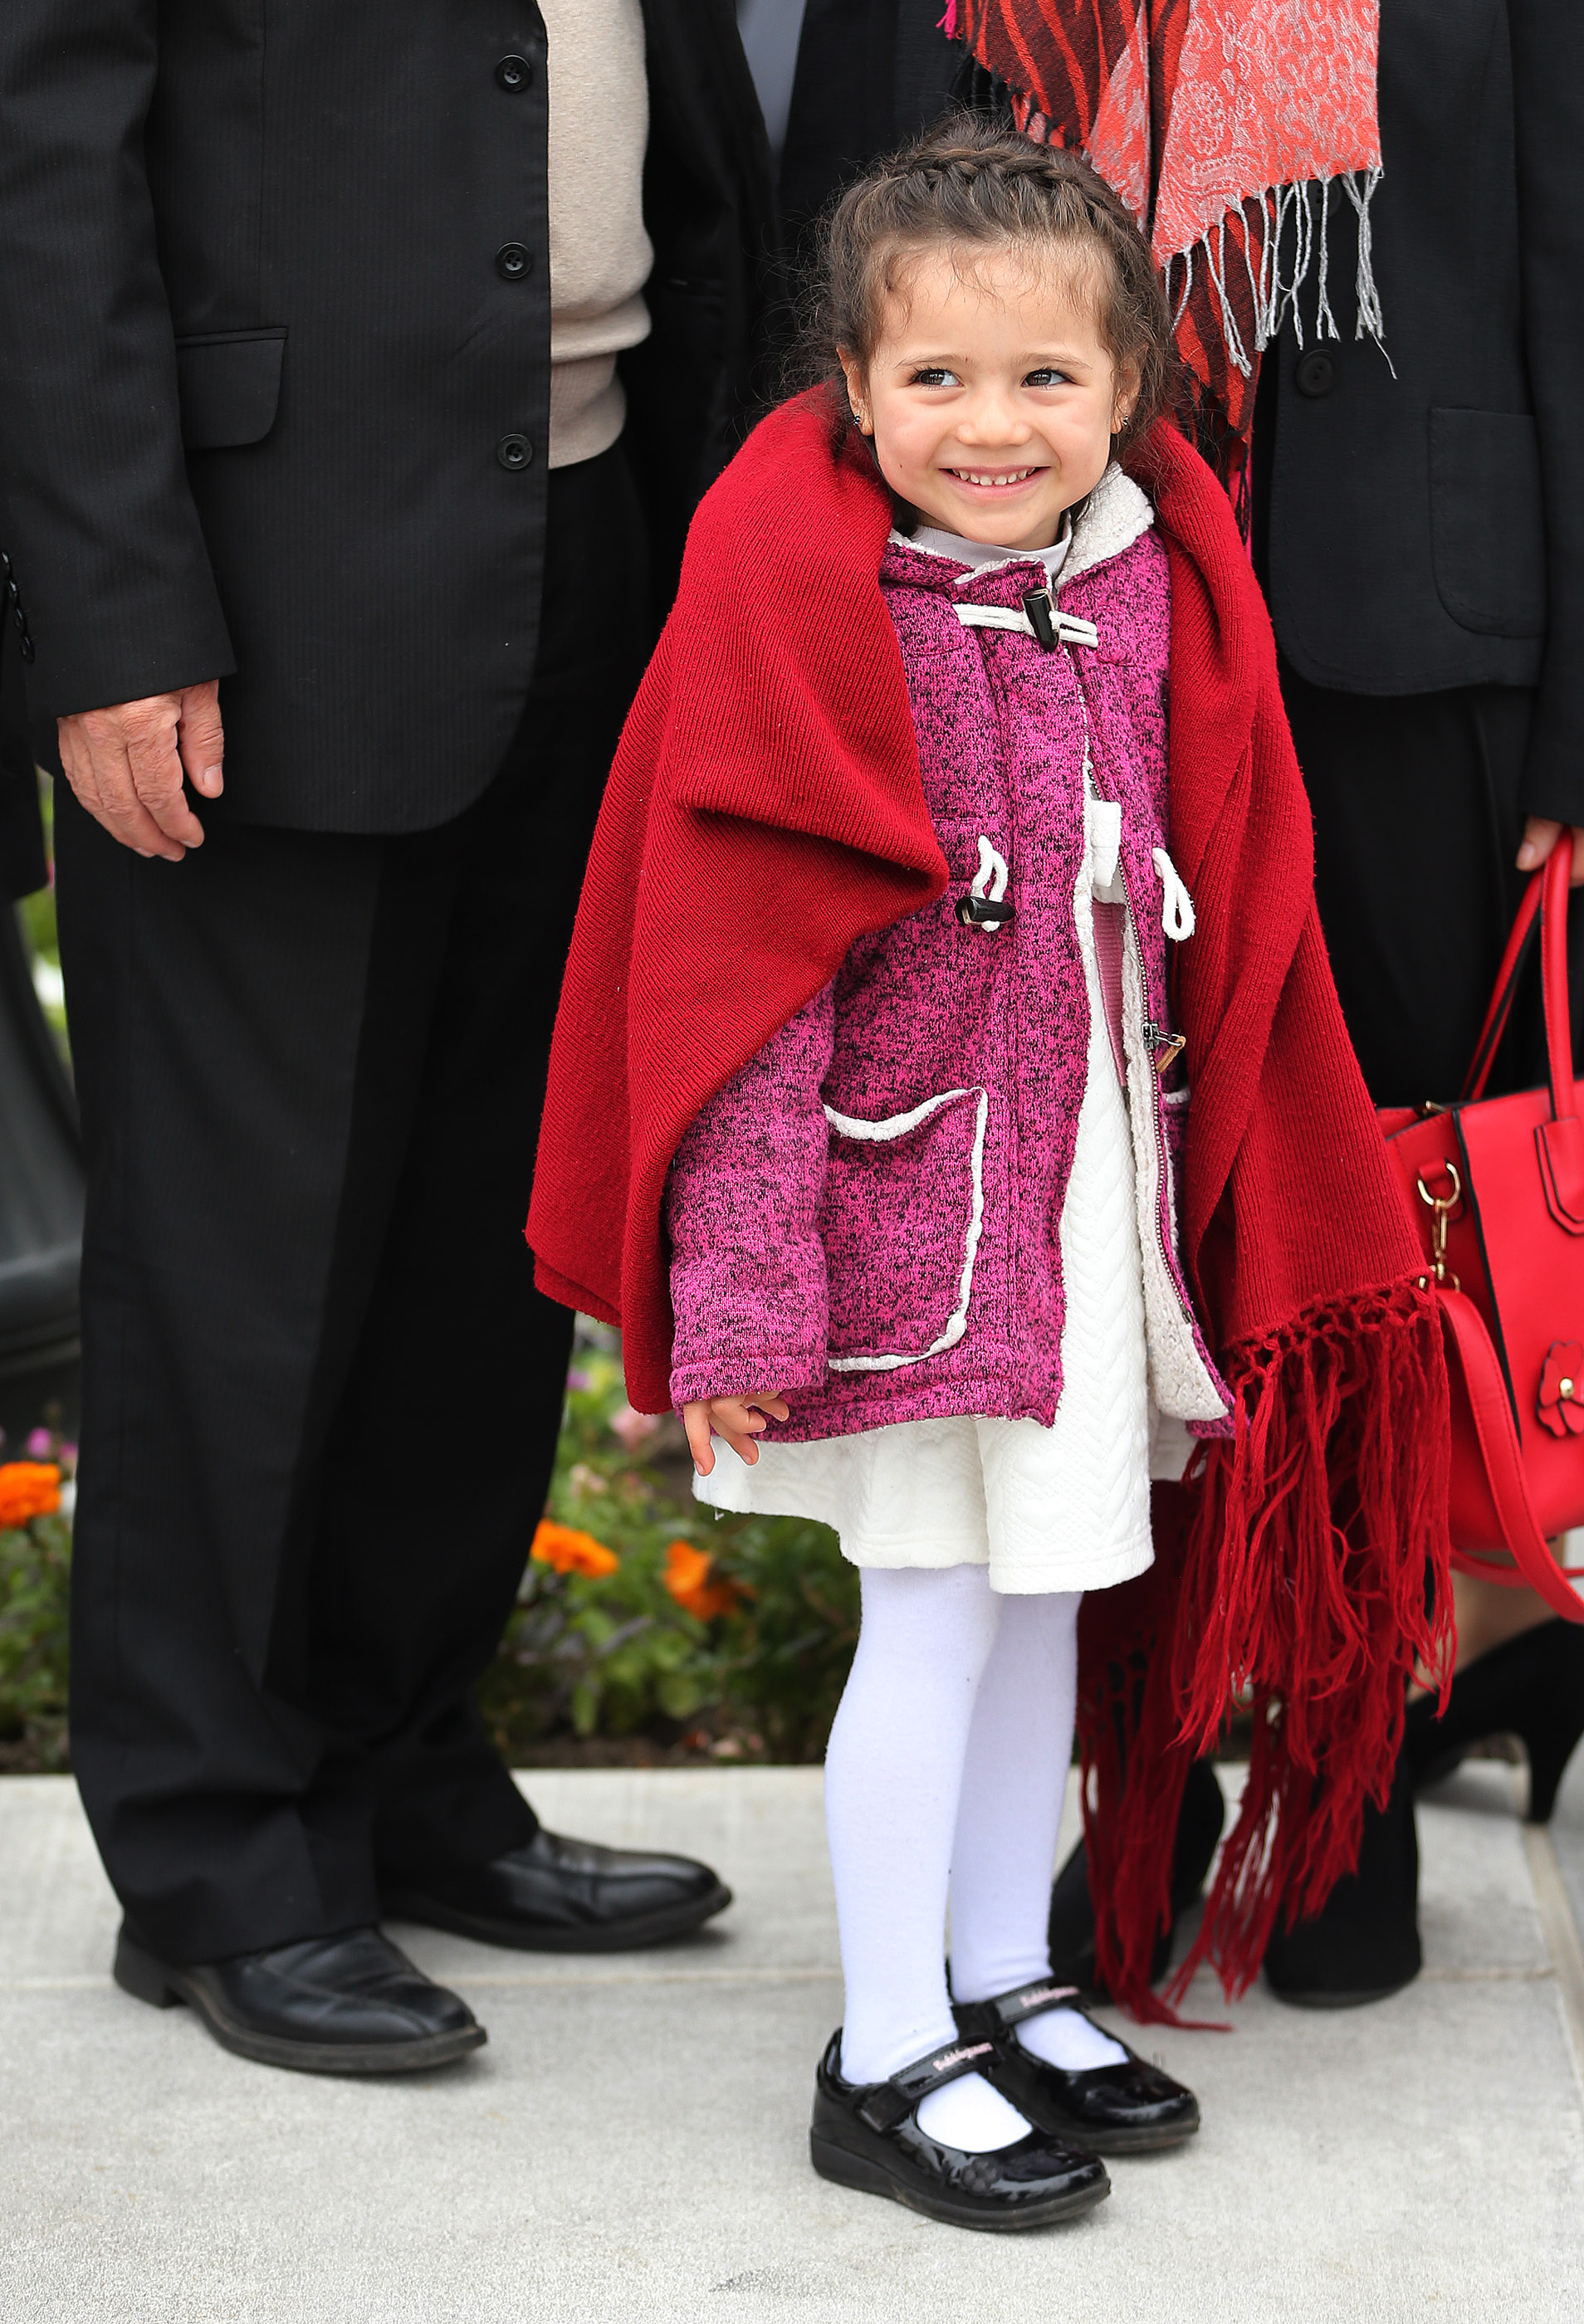 Gabriela Rojas stands outside the Concepcion Chile Temple on Sunday, Oct. 28, 2018, in Concepcion, Chile.